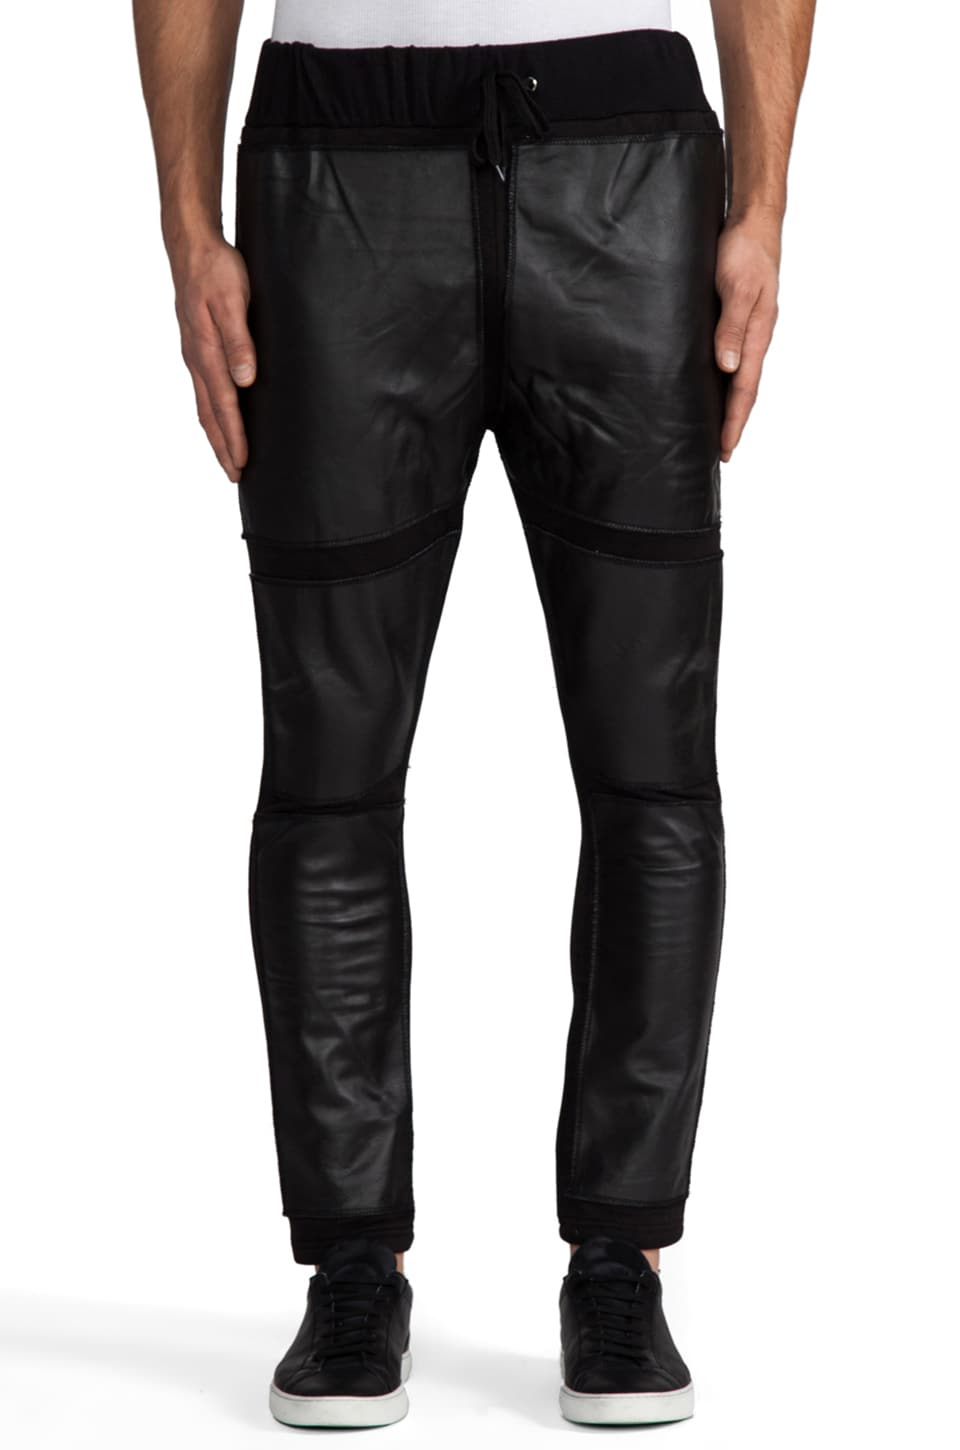 Iridium Black Square Leather Pants in Black